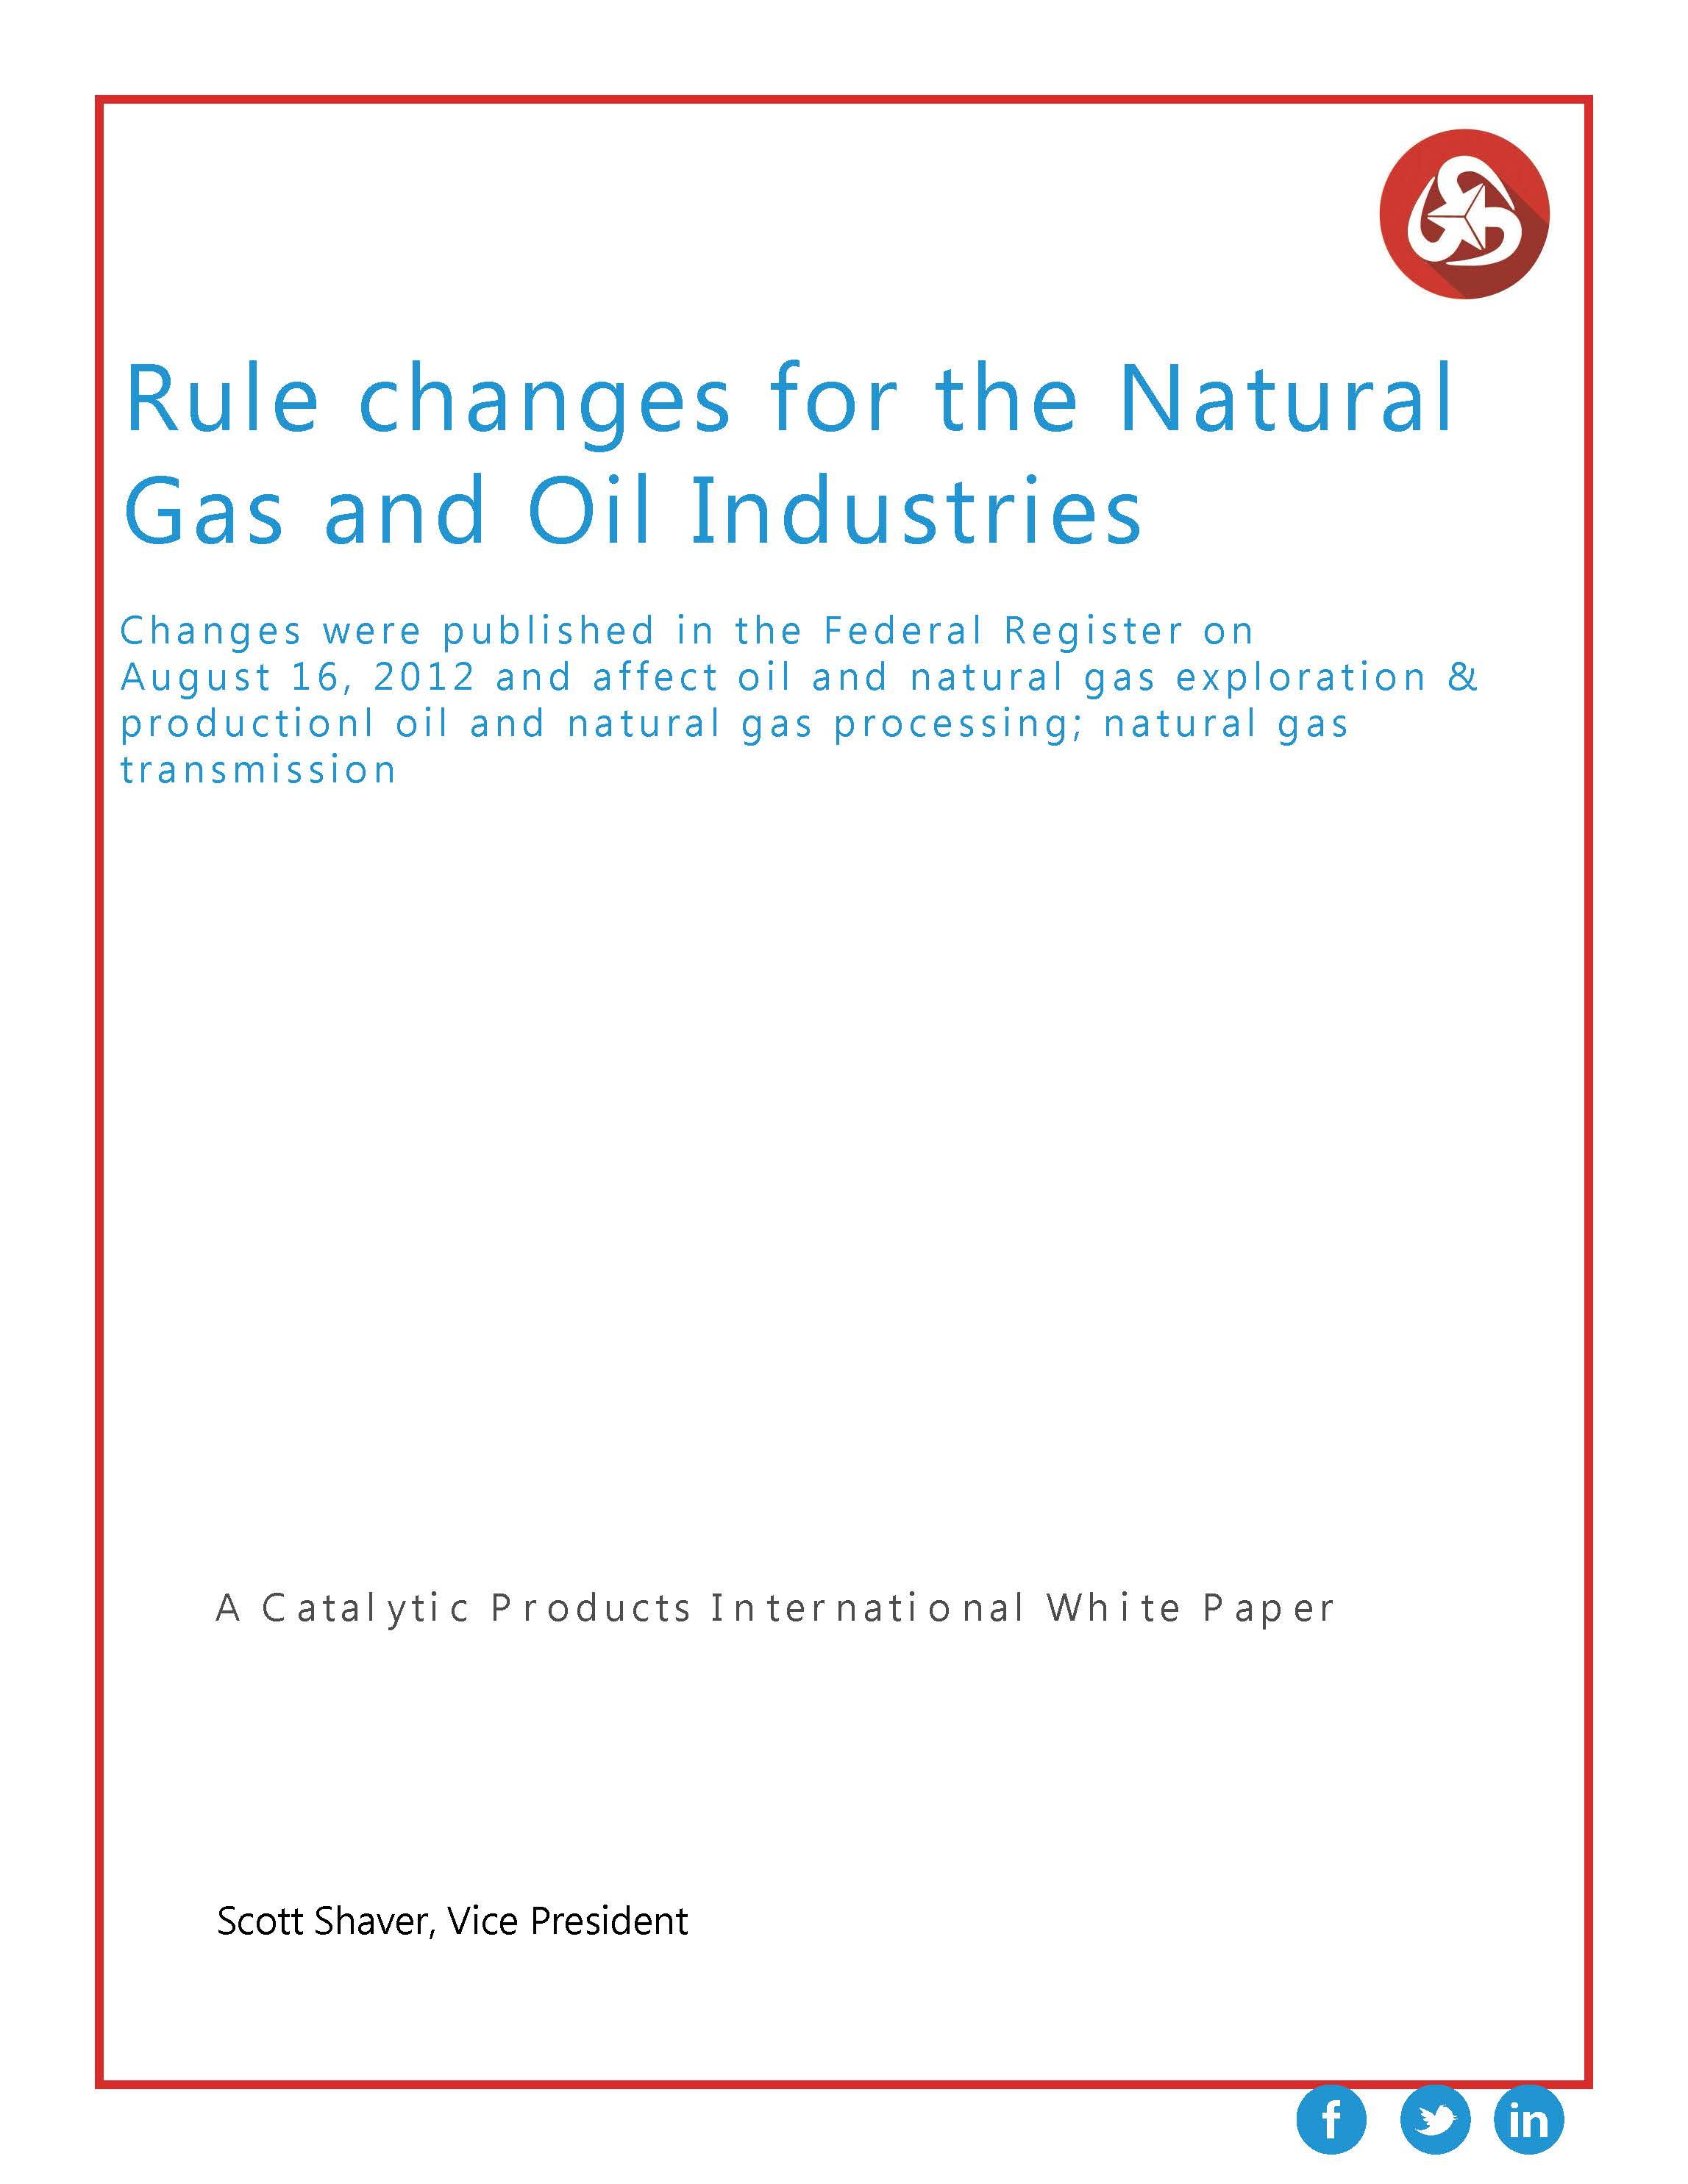 2014_Rule_Changes_for_the_Natural_Gas_Industry